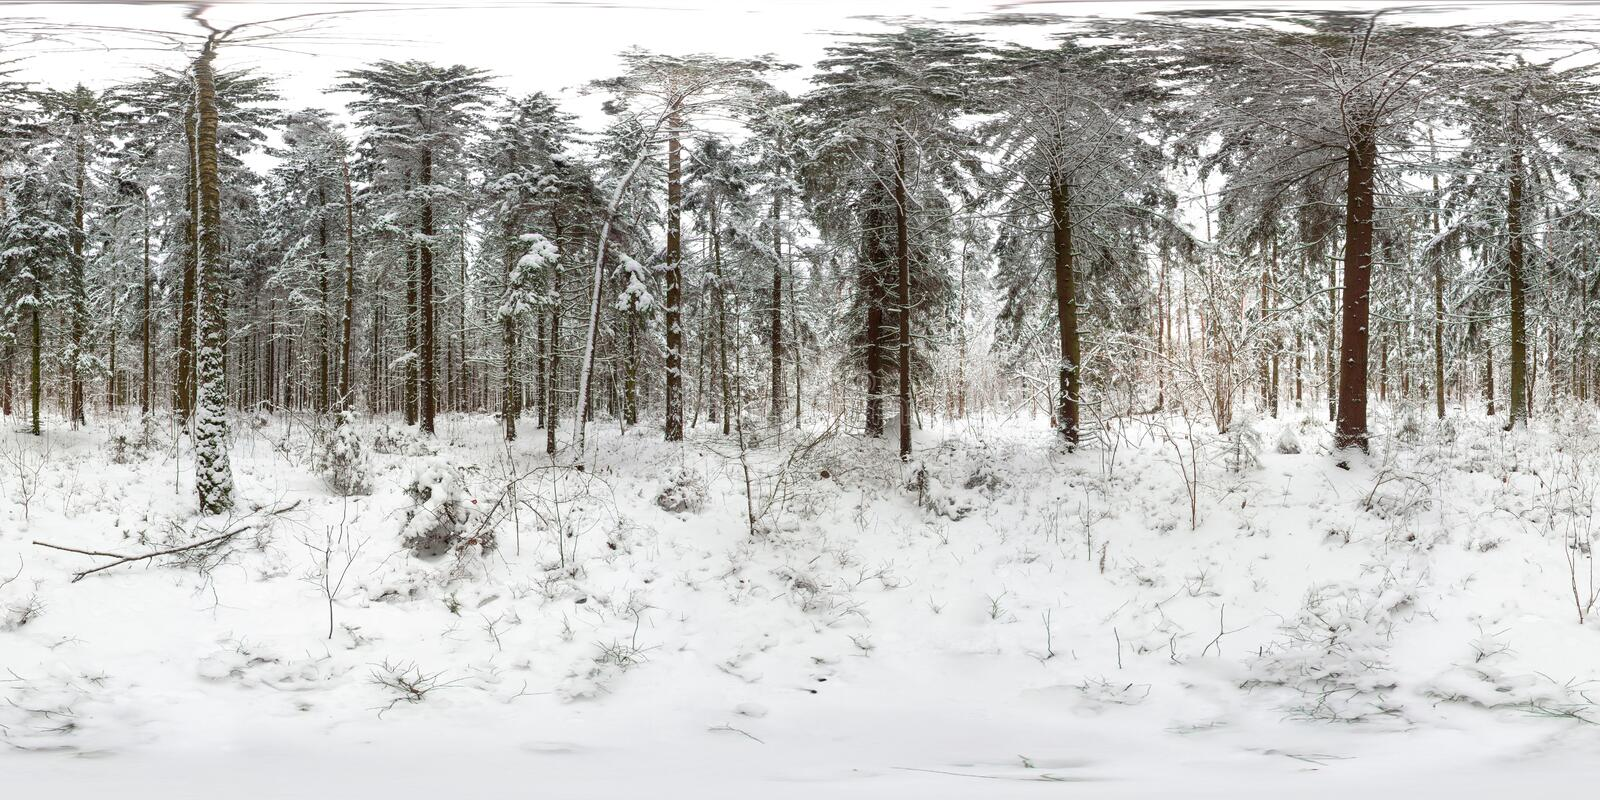 3D spherical panorama of winter forest with snow and pines with 360 degree viewing angle. Ready for virtual reality in vr. Full. Full equirectangular projection royalty free stock images